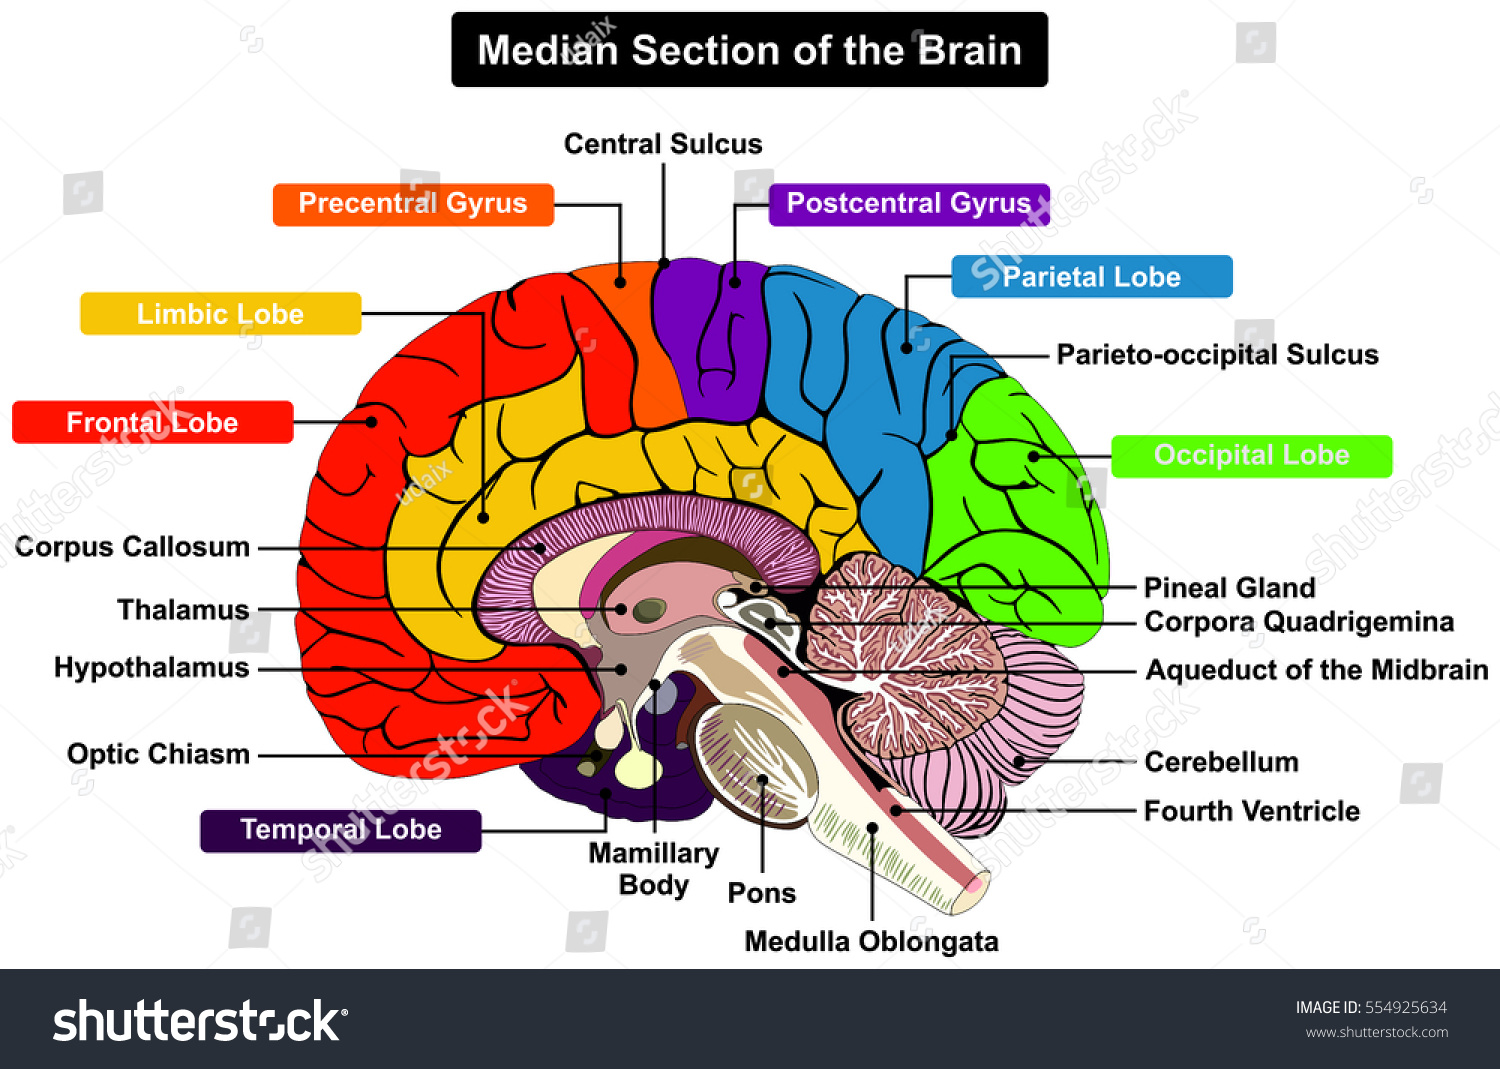 median section human brain anatomical structure stock vectormedian section of human brain anatomical structure diagram infographic chart with all parts cerebellum thalamus,